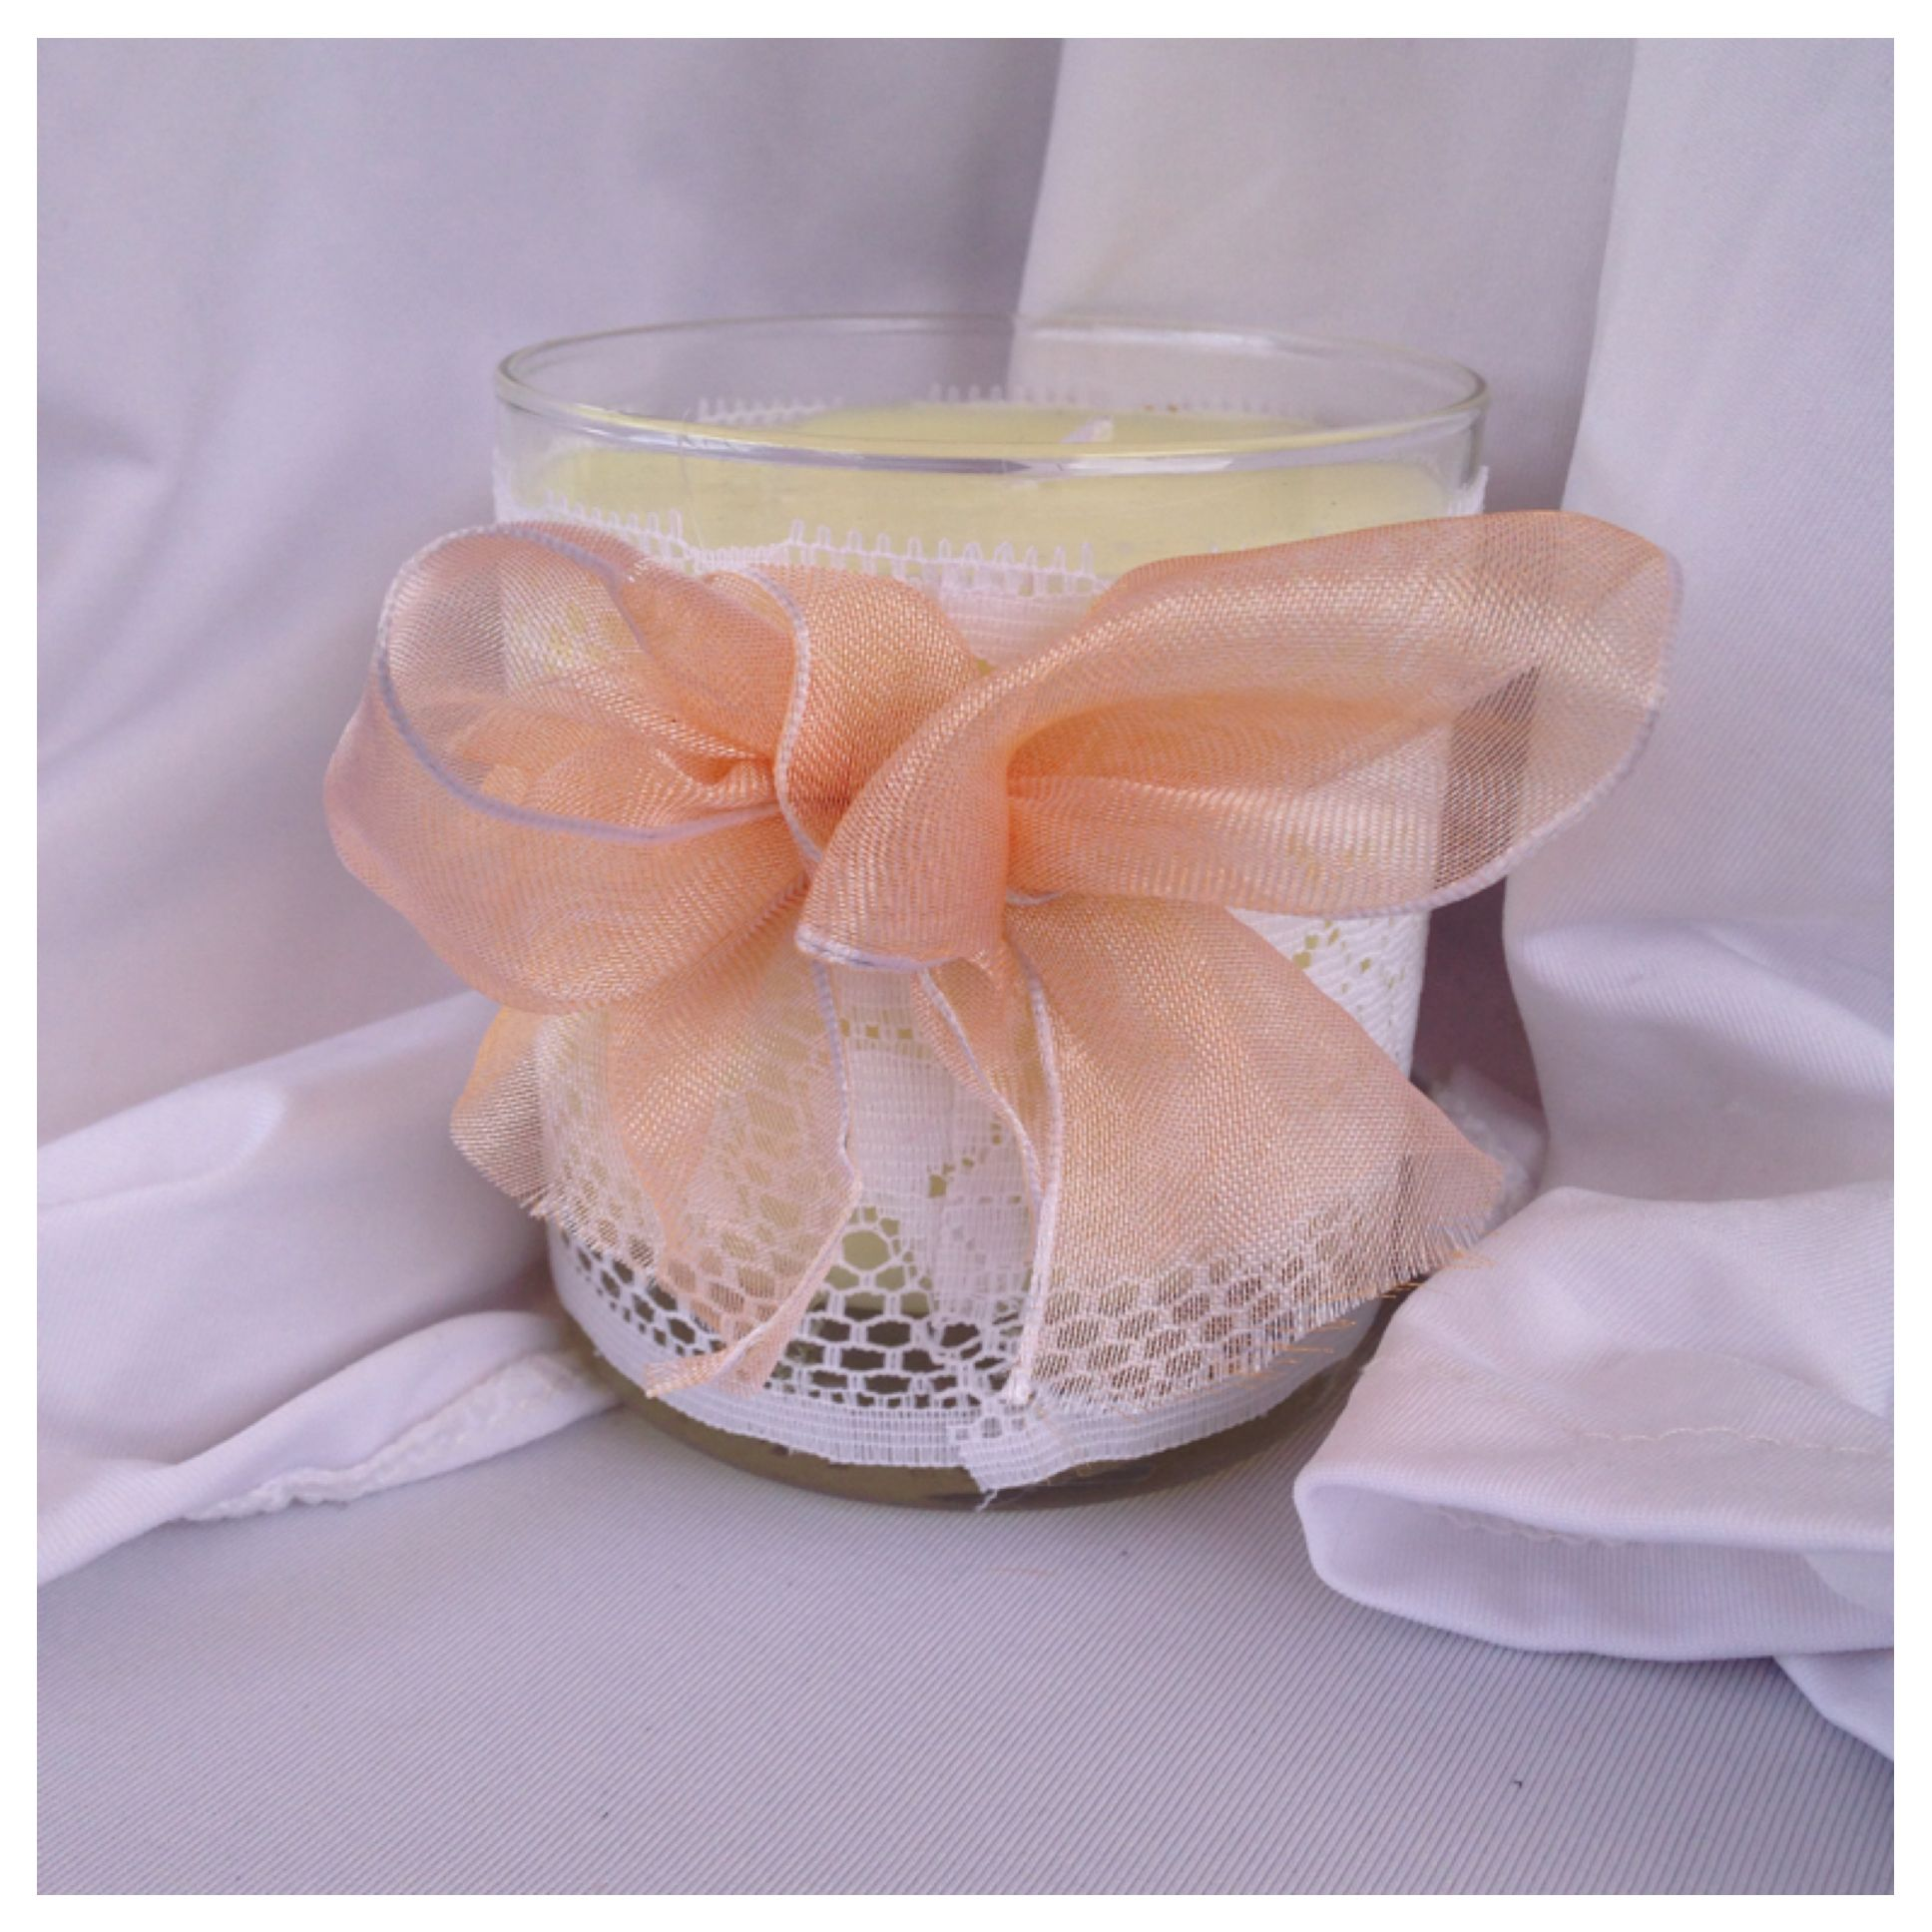 Gardenia!!!Lilac!!! Jasmine!!! Eucalyptus Leaf and Mint!!Patchouli!!French vanilla and Amber and more strong fragrances Soy Candles in decorated jars with laces! Ribbons!! Burlap!! Twine and more embellishments.  Relax!!! And take time for you !!! With our delicious and amazing fragrances...www.mappicandles.etsy.com